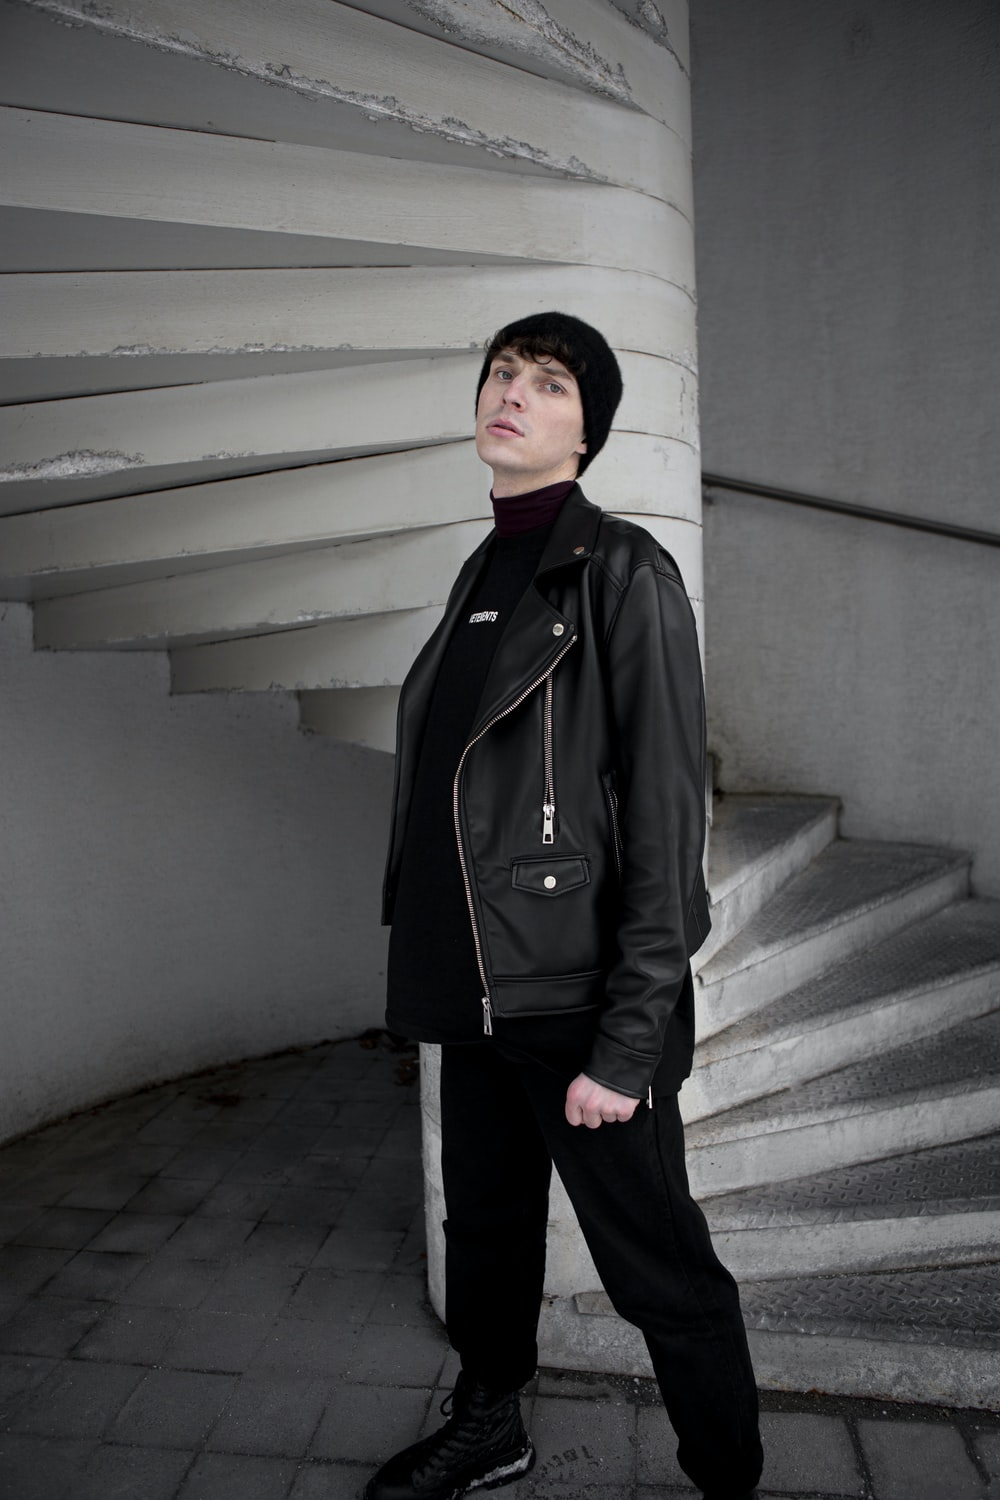 woman in black coat standing on gray concrete stairs